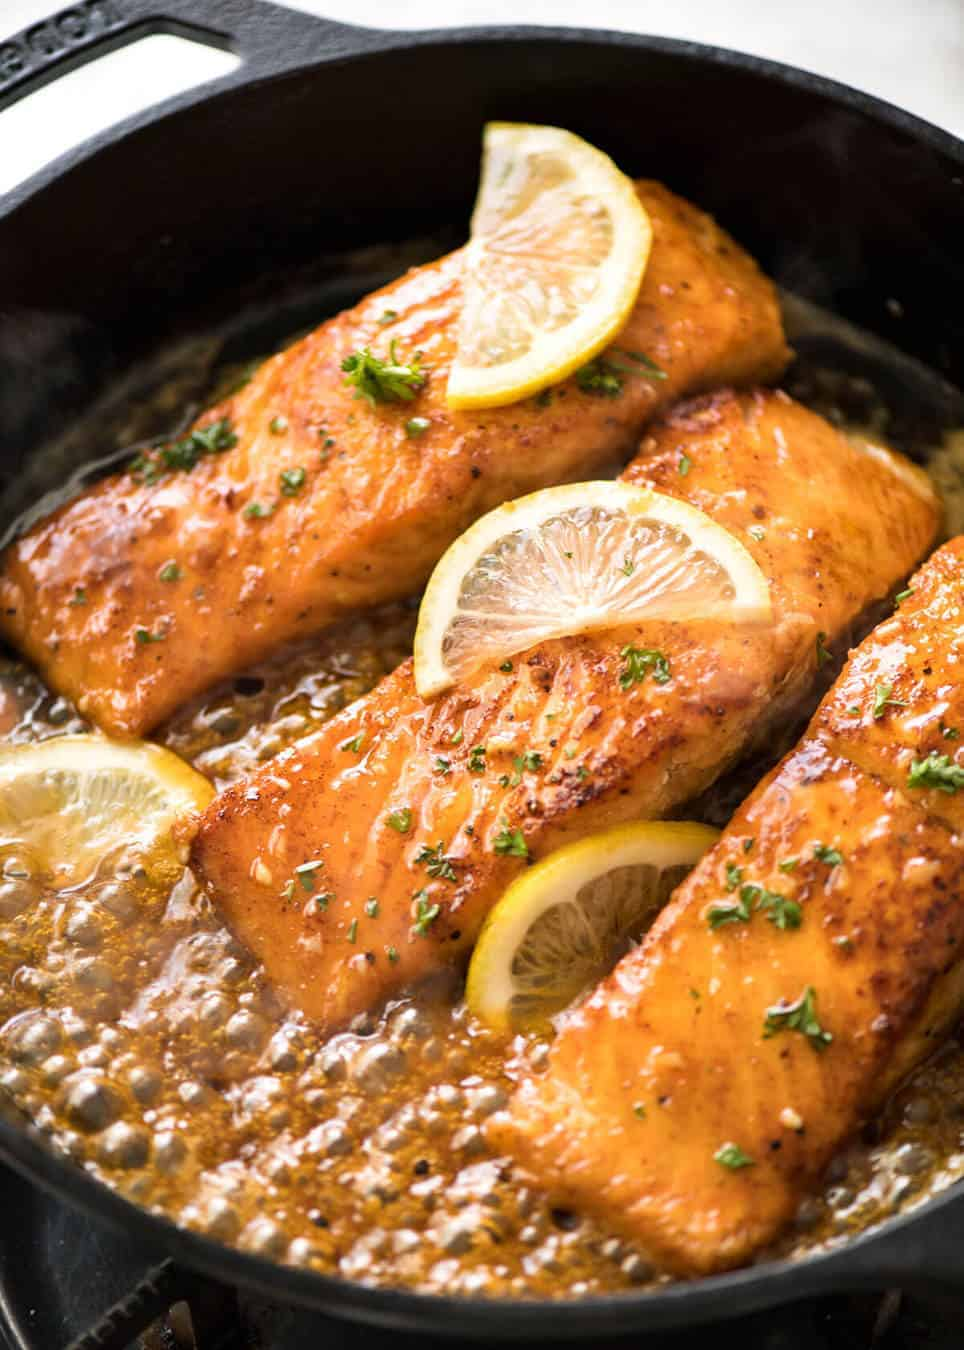 If this Lemon Honey Glazed Salmon takes more than 8 minutes to make, you've overcooked the salmon. That sauce is lip smackingly delicious! www.recipetineats.com